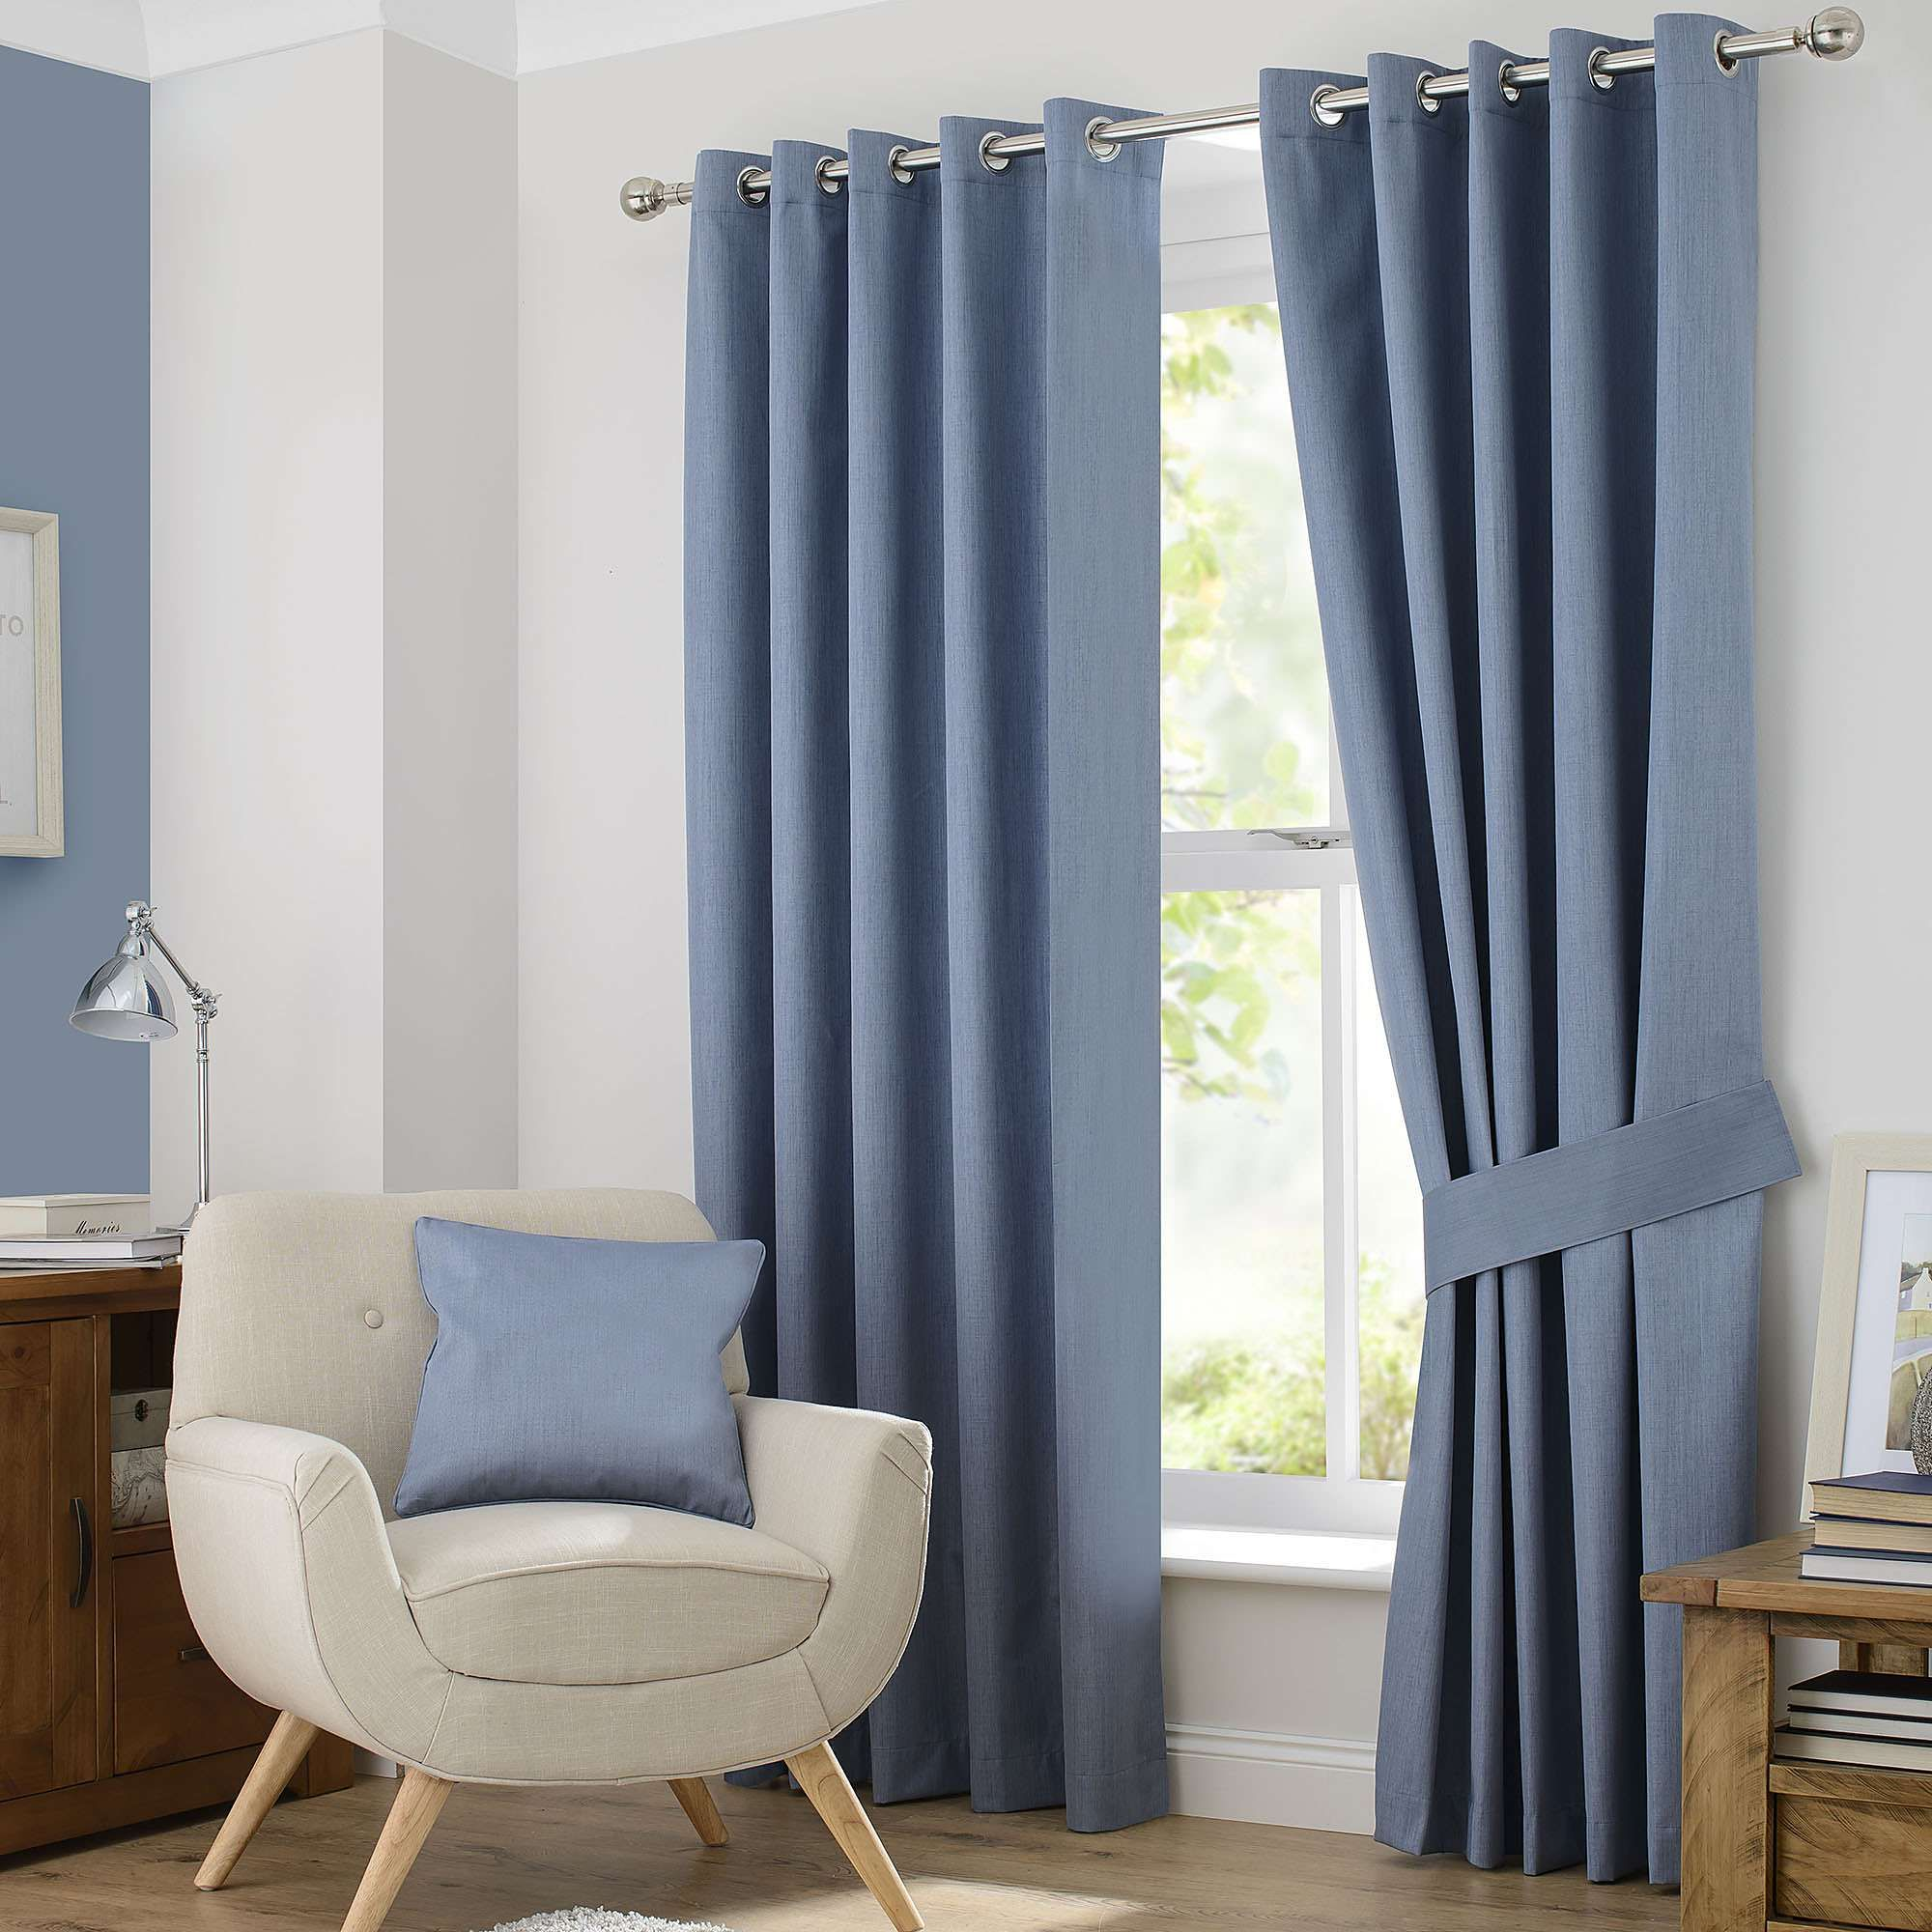 curtain do market grommet curtains chambray treatments openweave leaves category autumn drapes top window xxx rugs world